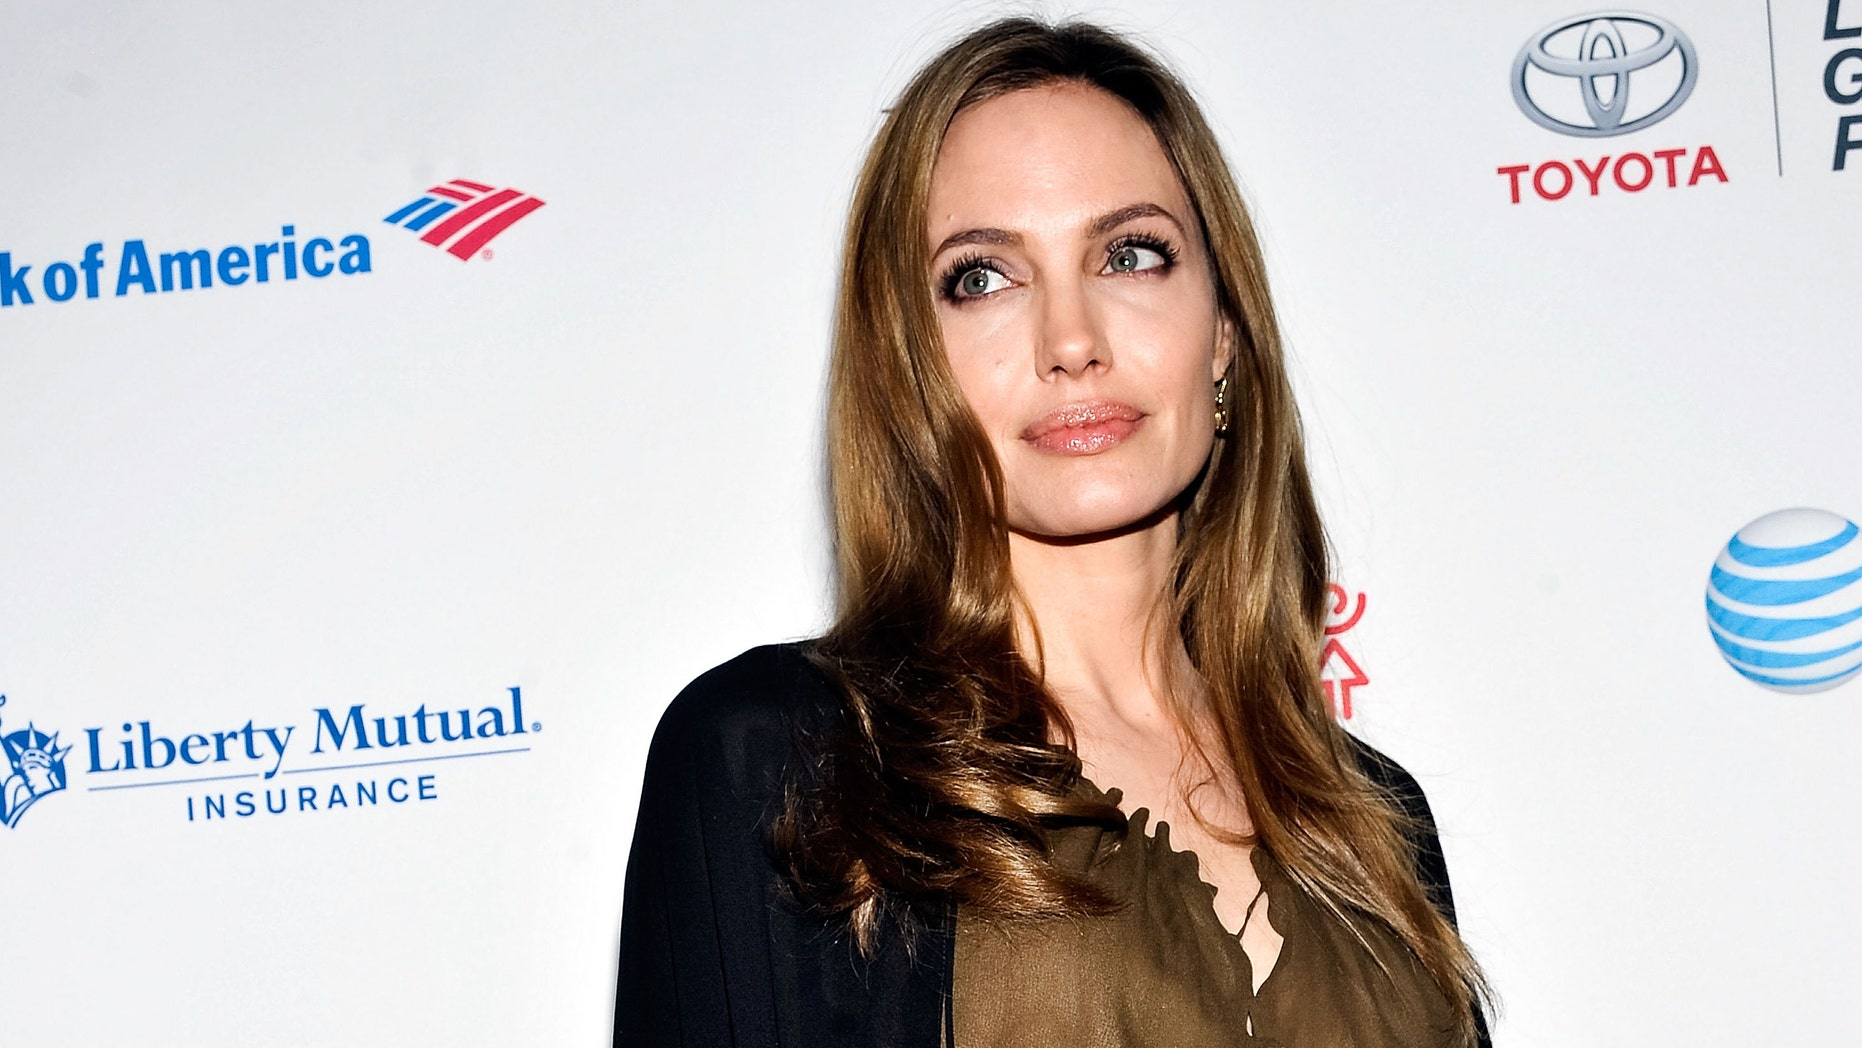 NEW YORK, NY - APRIL 04:  Actress Angelina Jolie attends the Women in the World Summit 2013 on April 4, 2013 in New York, United States.  (Photo by Daniel Zuchnik/Getty Images)